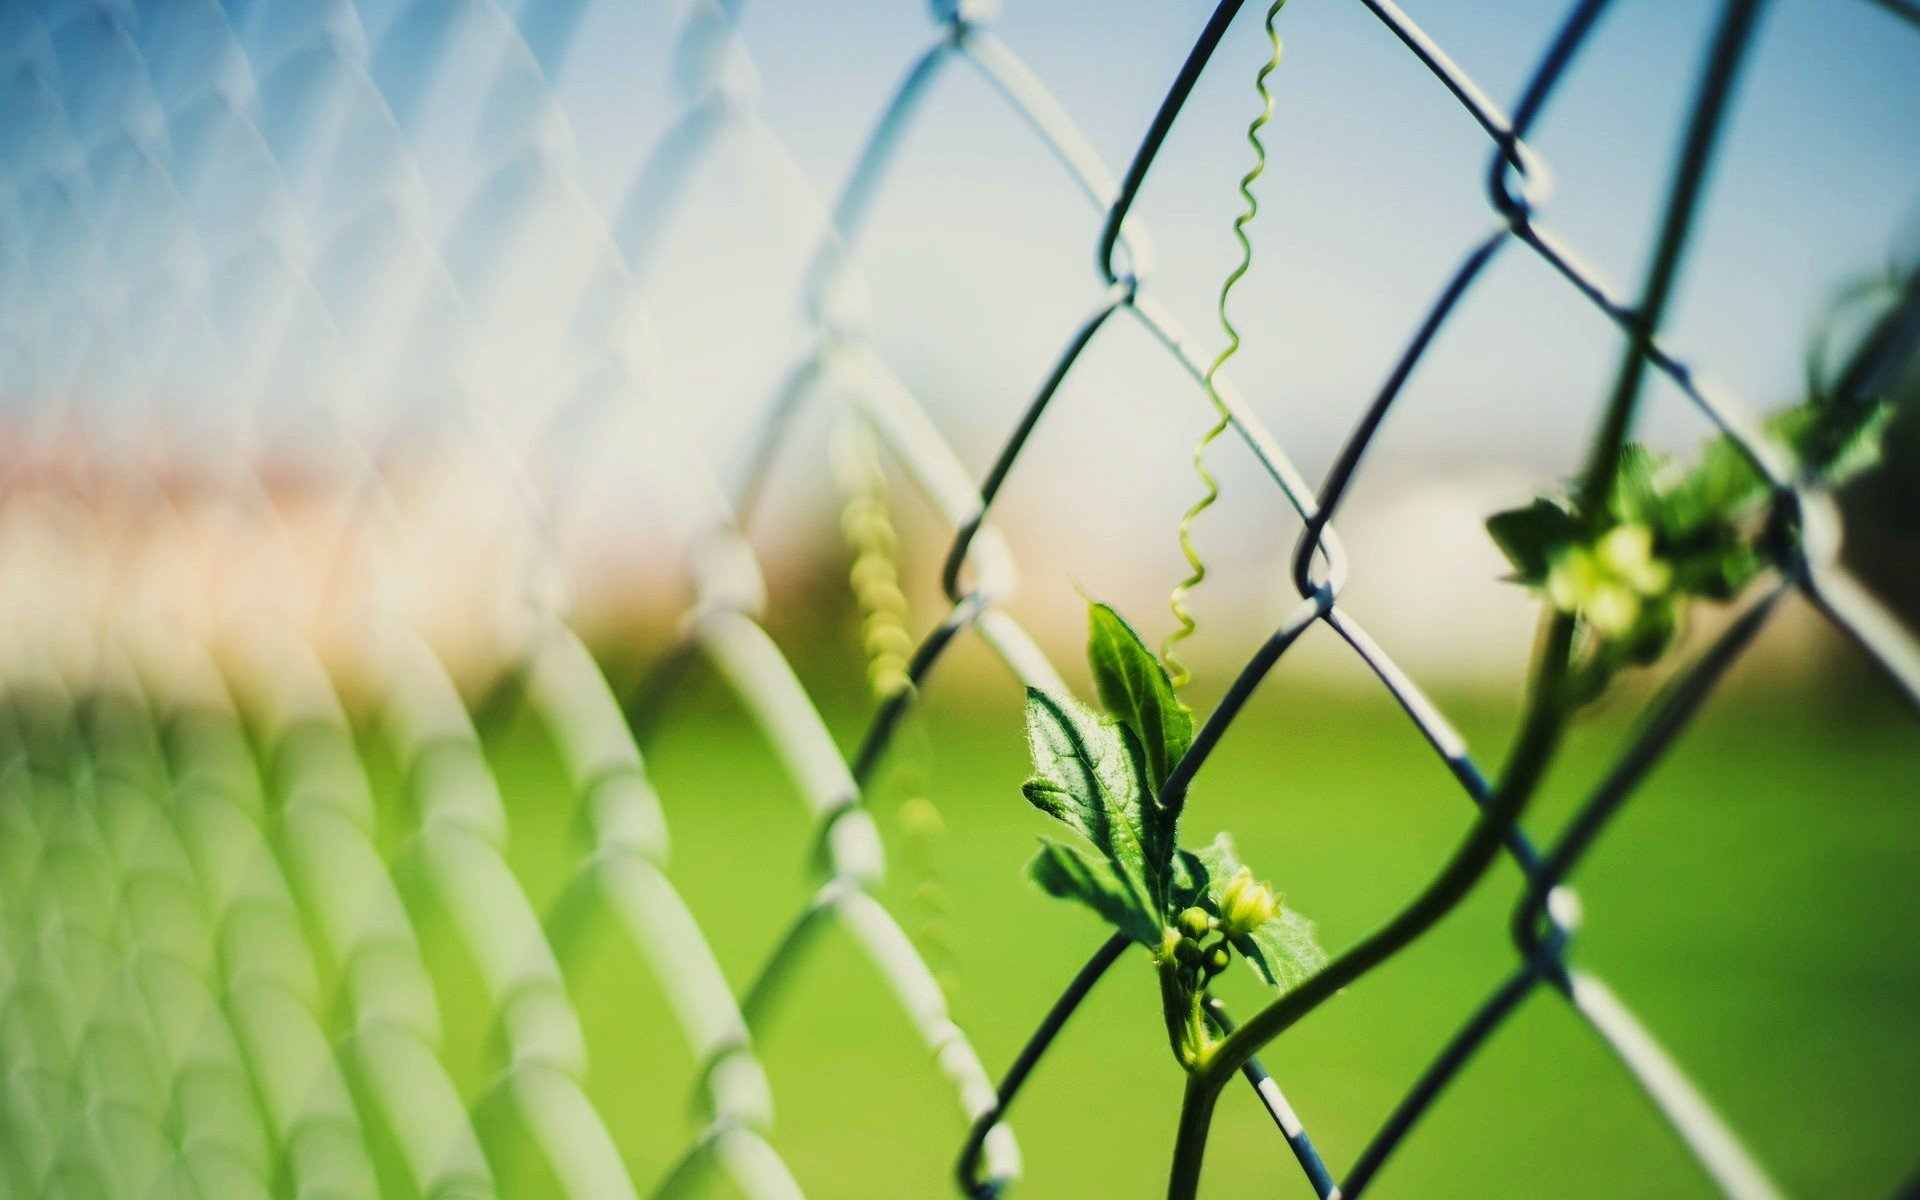 Leaves and fence photo